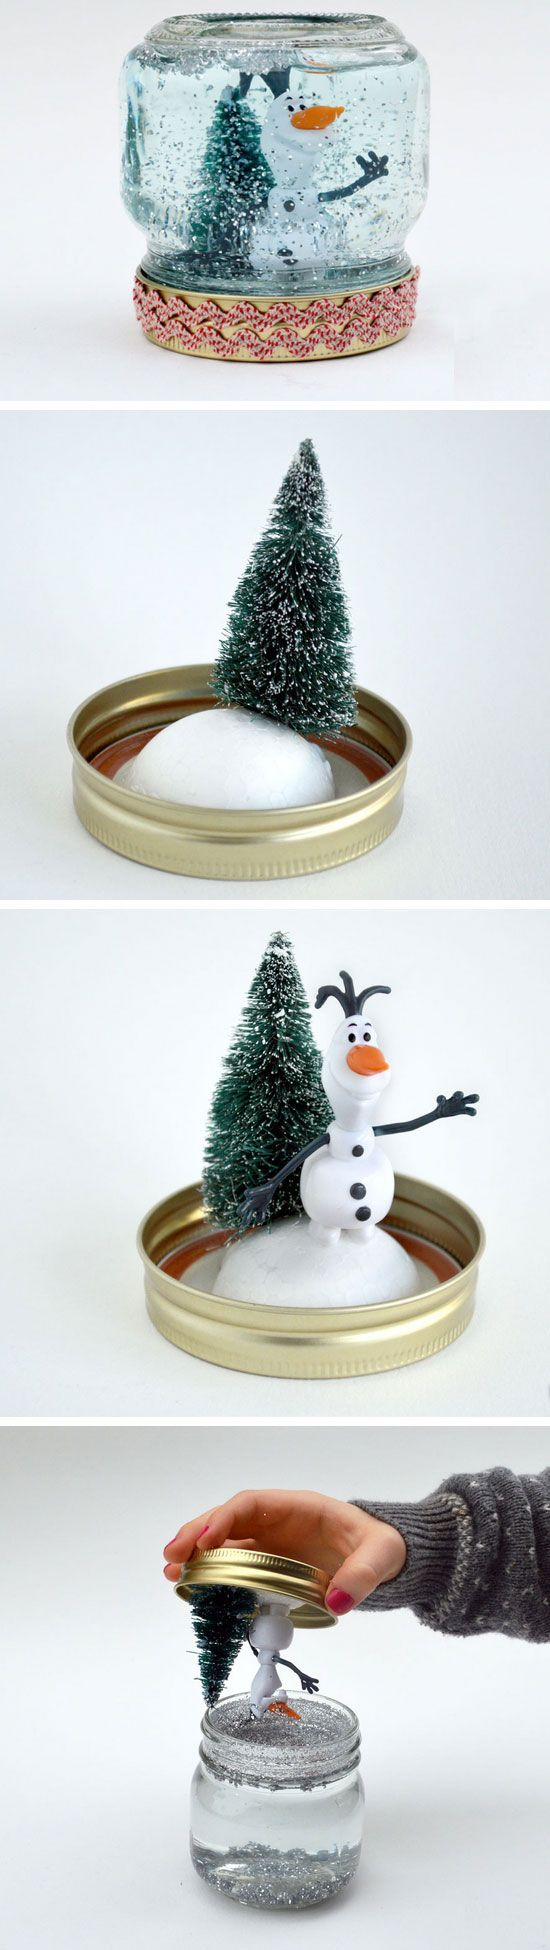 How to Make A Snow Globe | DIY Christmas Crafts for Kids to Make